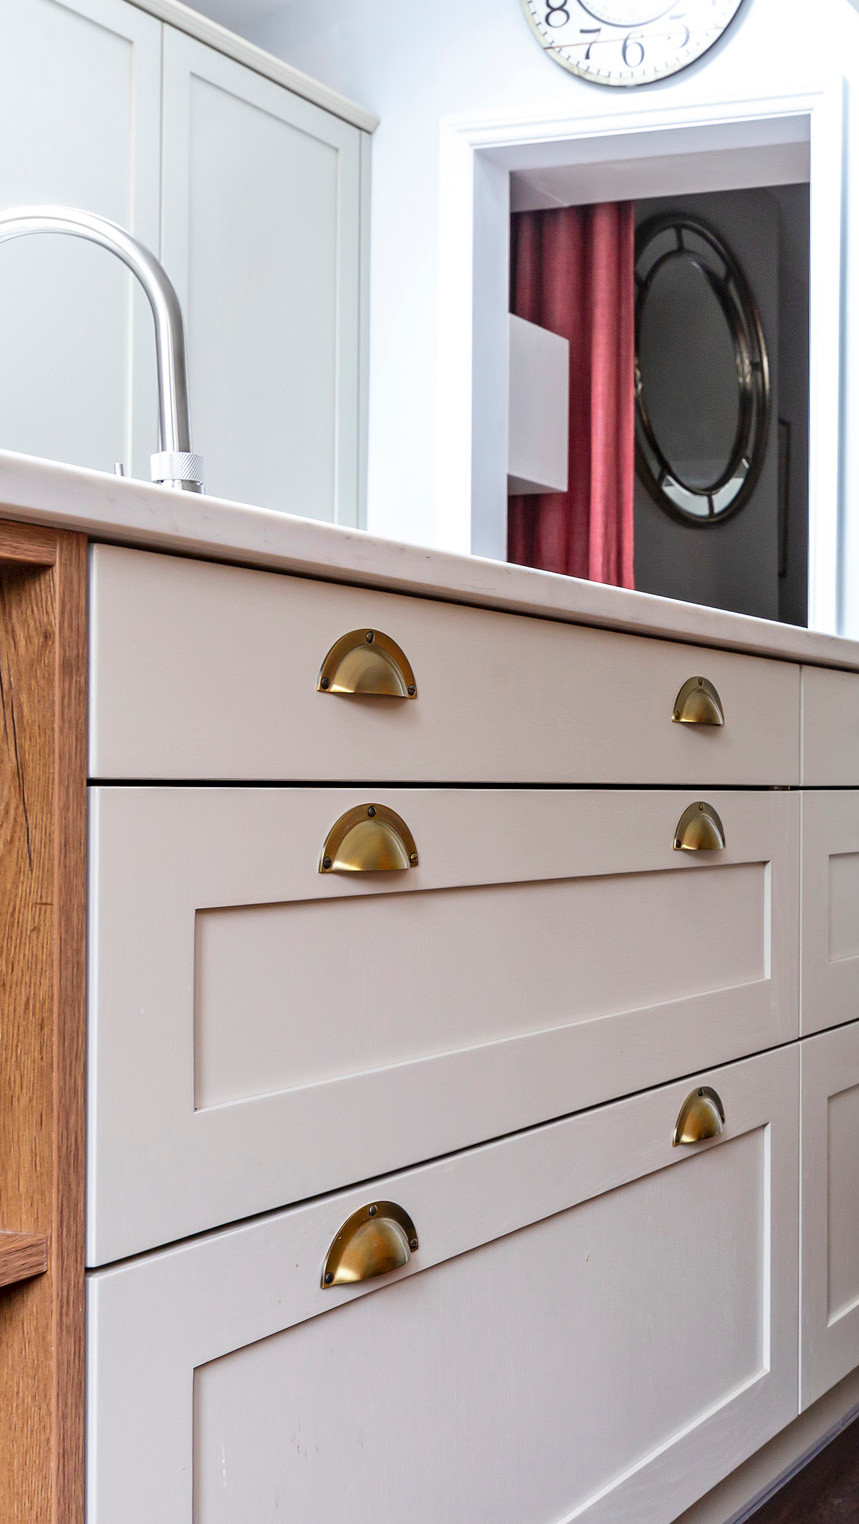 Kitchen drawers in island with gold cup handles